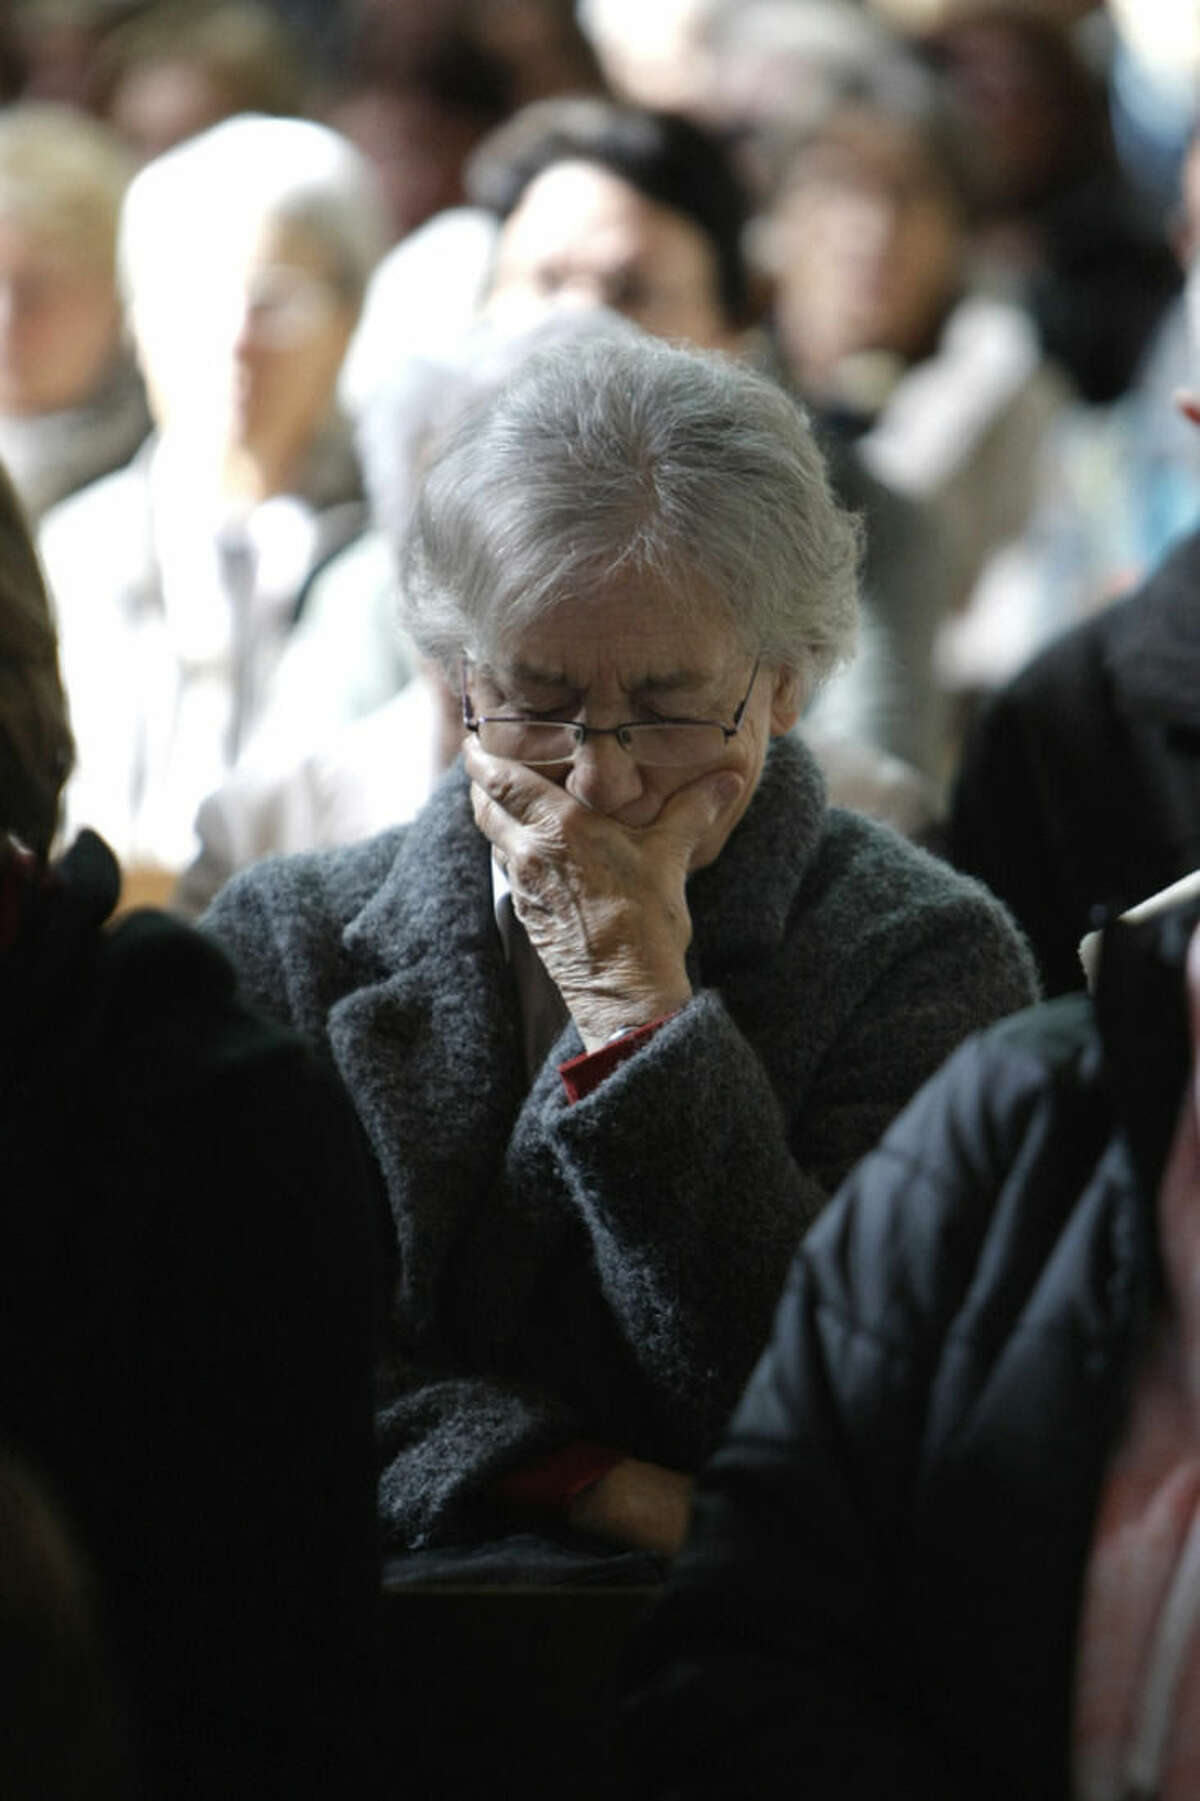 A woman looks down during the special Mass to honour the victims of the Germanwings jet crash, inside the cathedral Notre Dame de Bourg, in Digne-les-Bains, France, Saturday, March 28, 2015. French prosecutors say co-pilot Andreas Lubitz deliberately crashed the Germanwings flight into a mountain on Tuesday, killing all 150 people aboard. German prosecutors are trying to determine what caused Lubitz to take such a devastating decision. (AP Photo/Claude Paris)